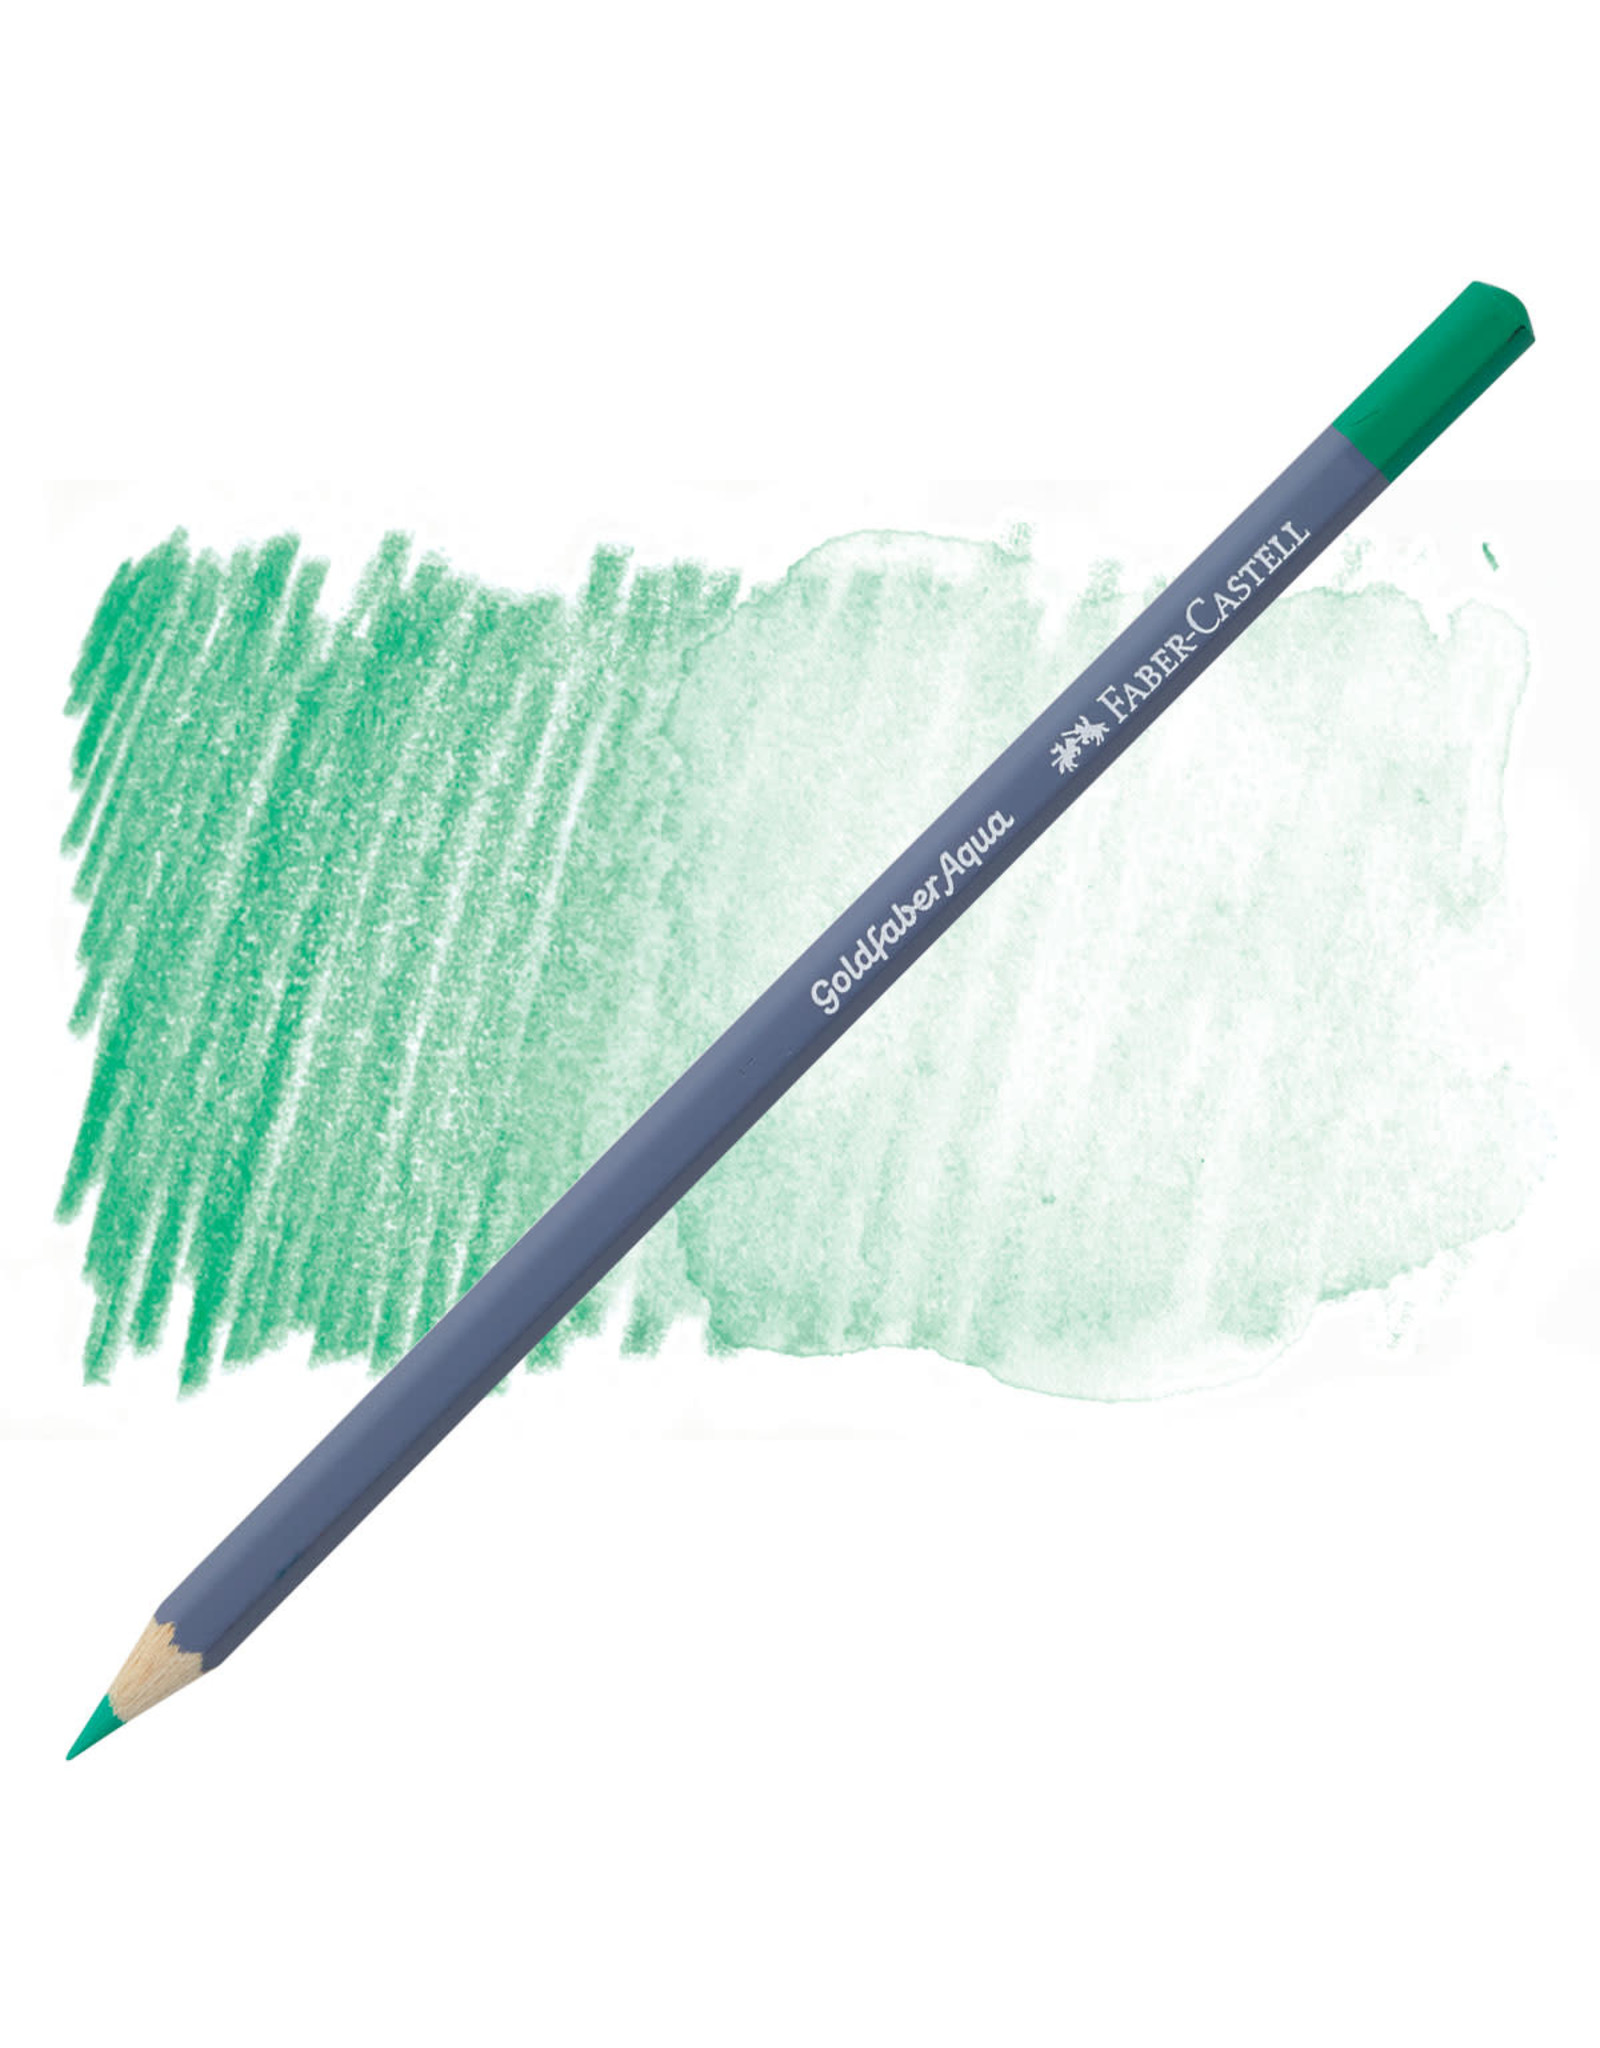 Faber-Castell Goldfaber Aqua Watercolor Pencil - Lt Phthalo Green #162